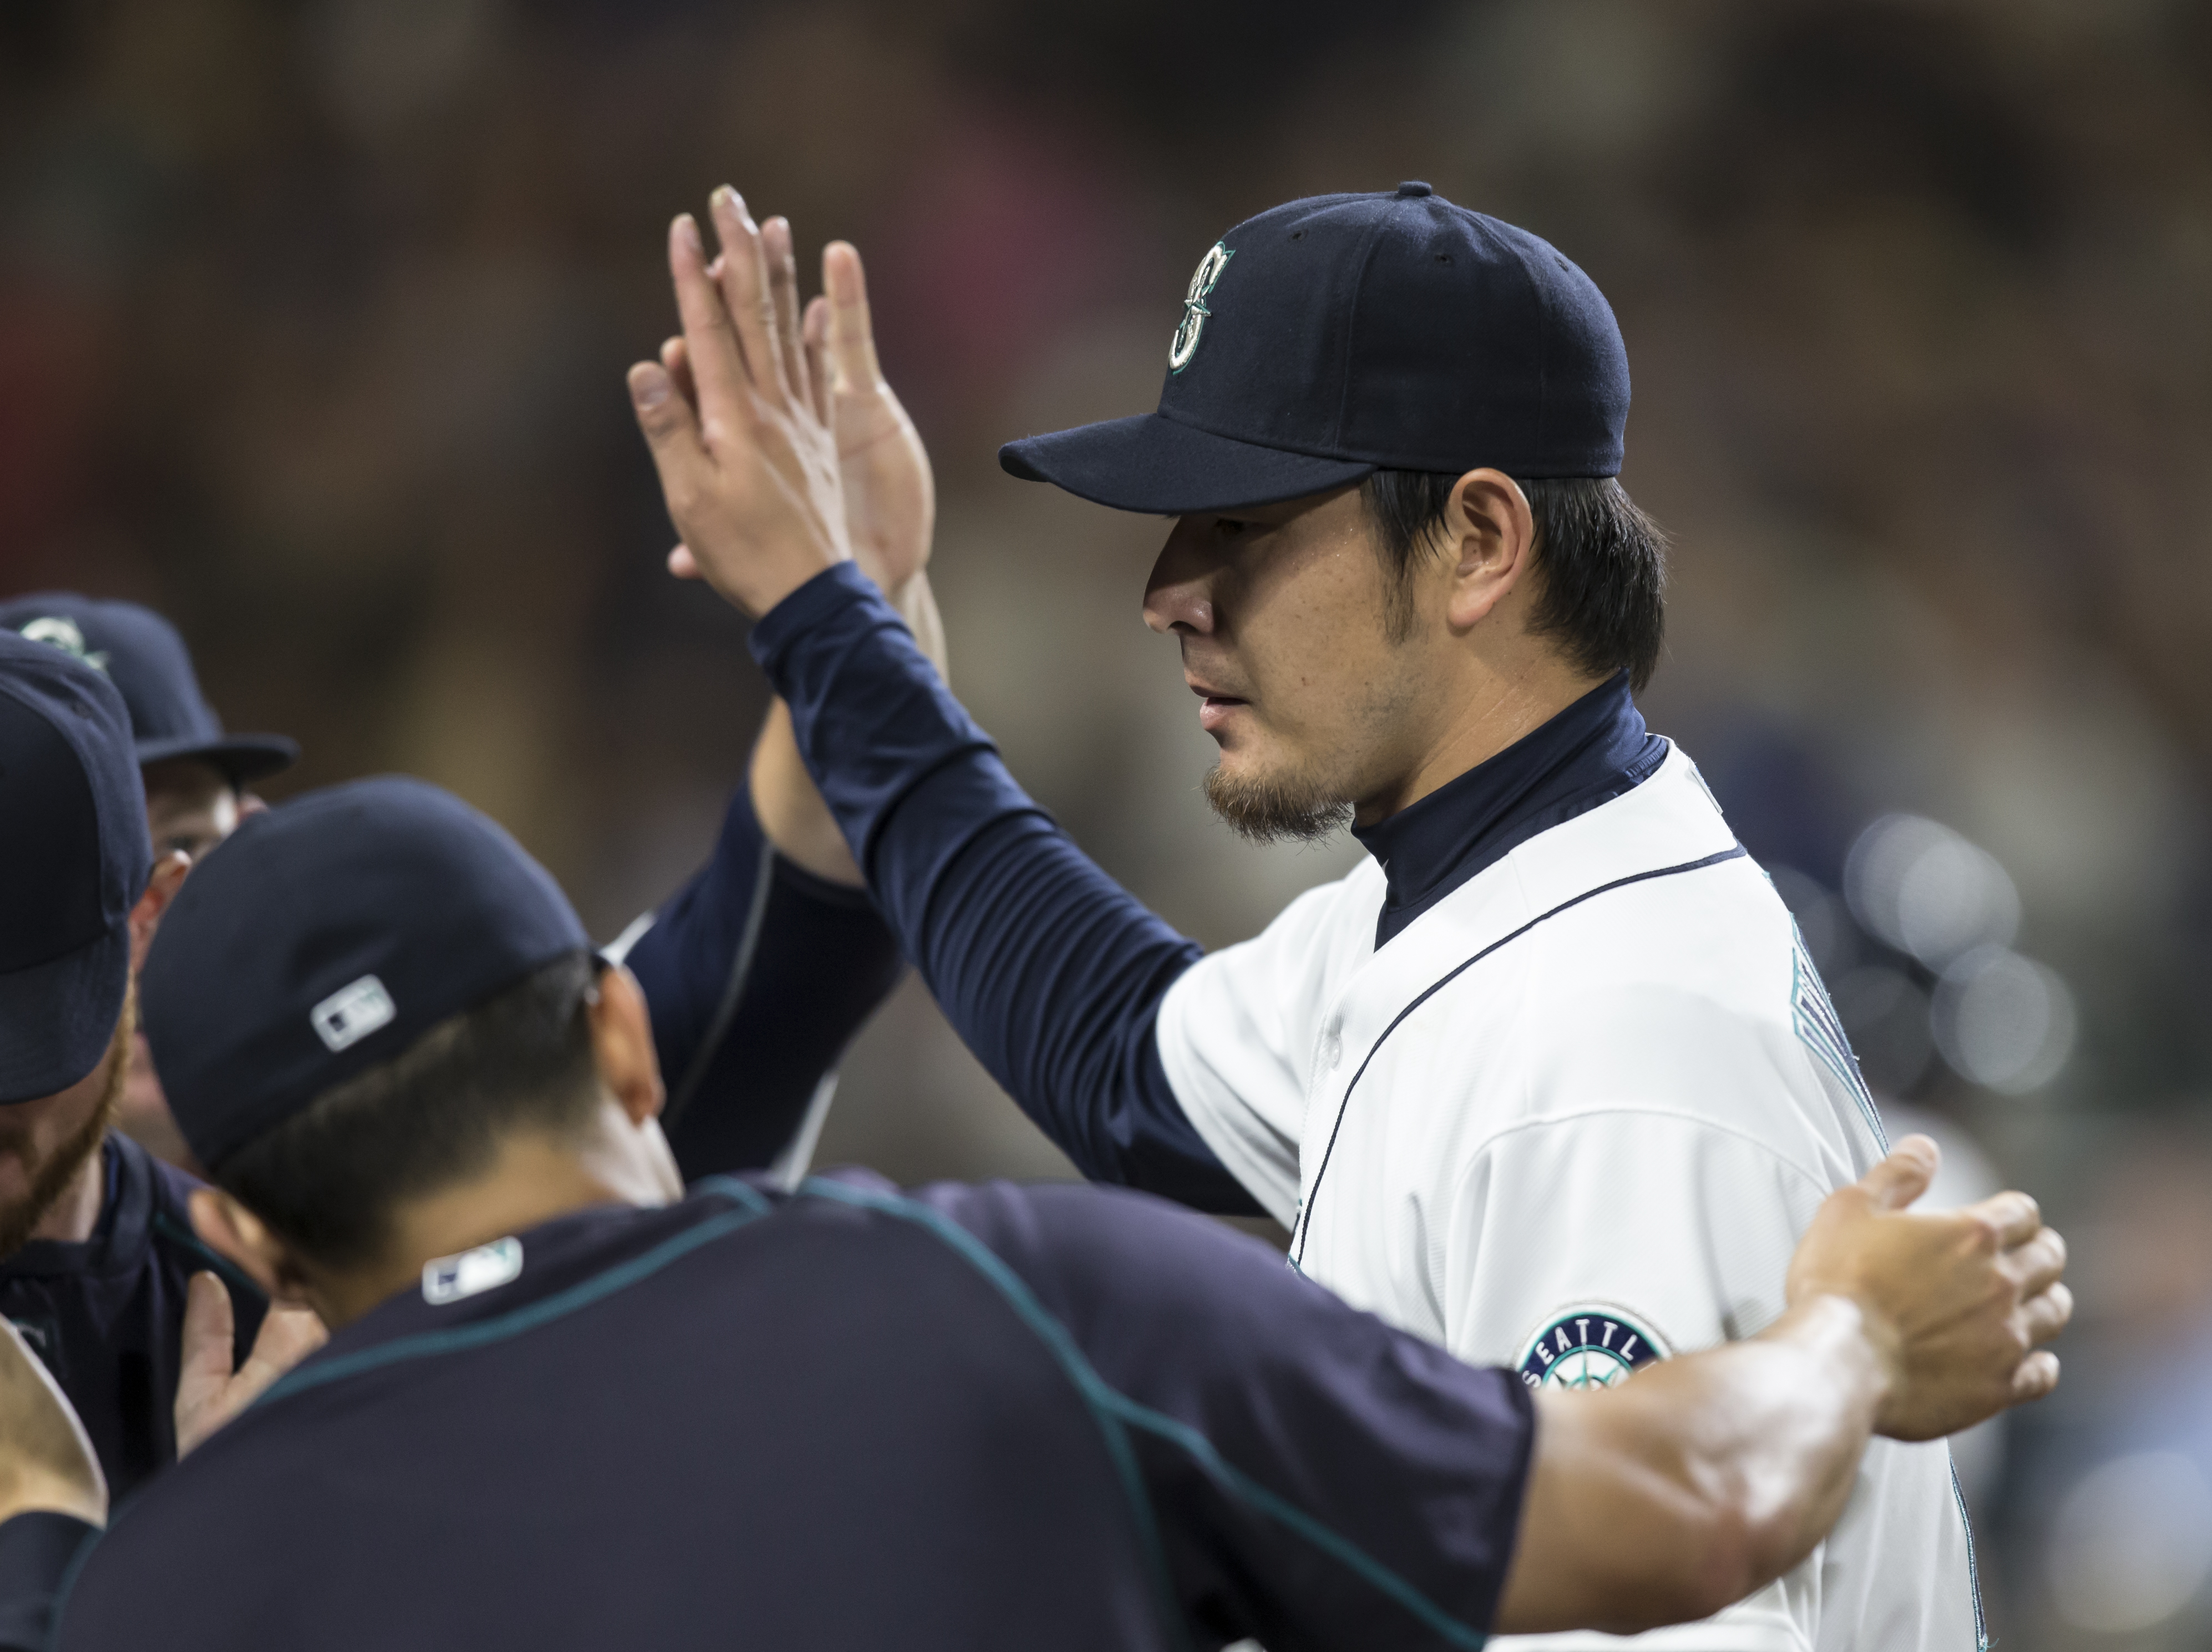 Seattle Mariners starter Hisashi Iwakuma is congratulated by teammates as he comes off the field after the top of the eighth inning of a baseball game against the Los Angeles Angels, Saturday, July 11, 2015, in Seattle. (AP Photo/Stephen Brashear)